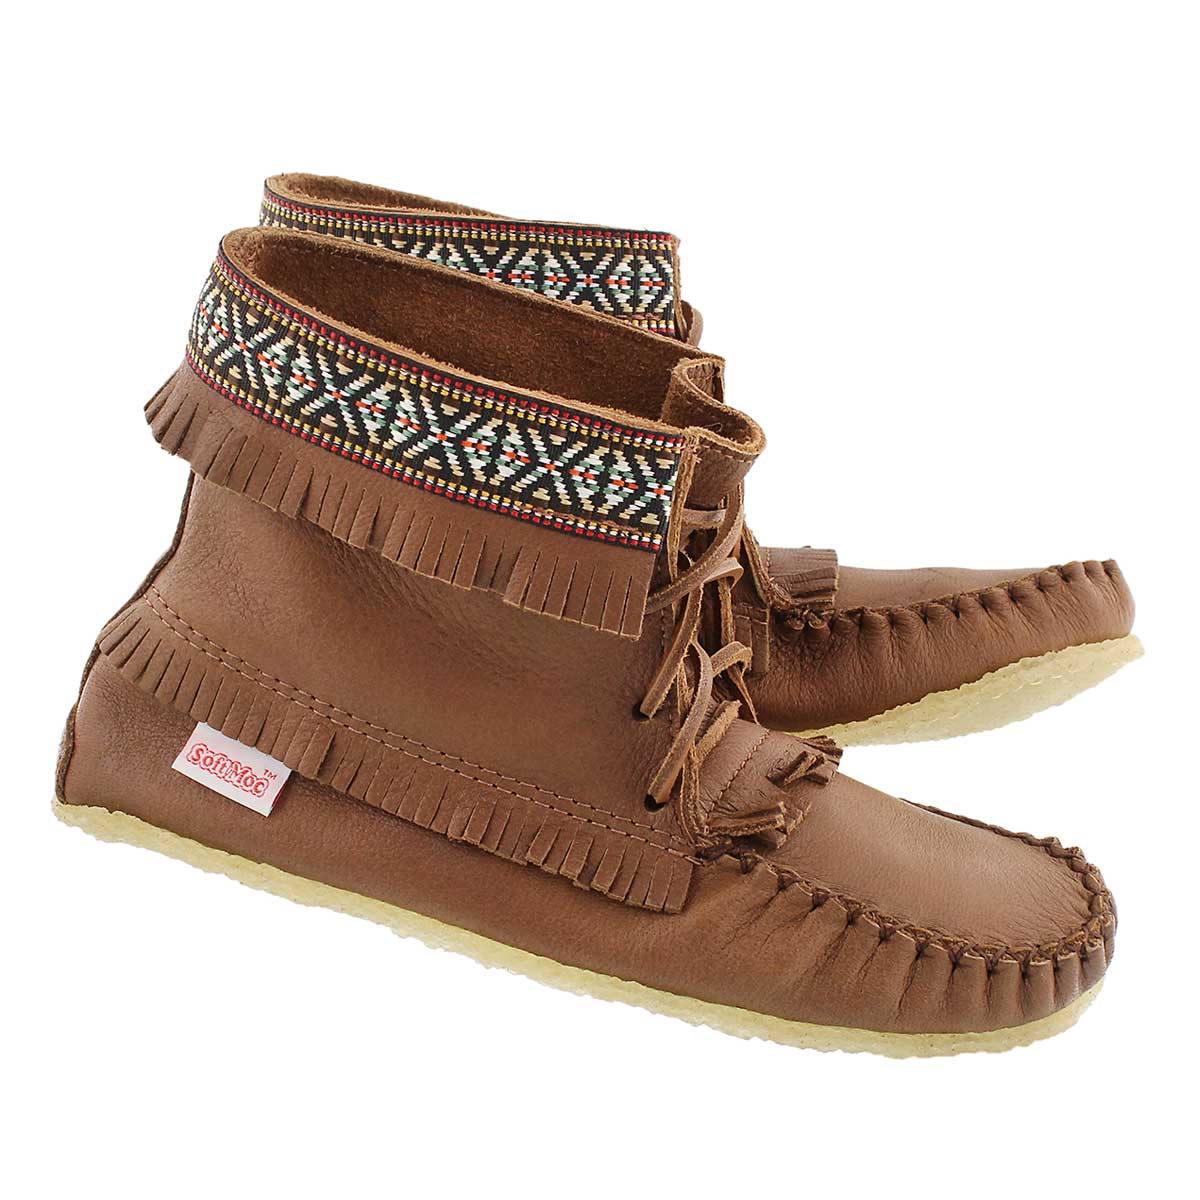 Bottine moc frange érable 137597, fem